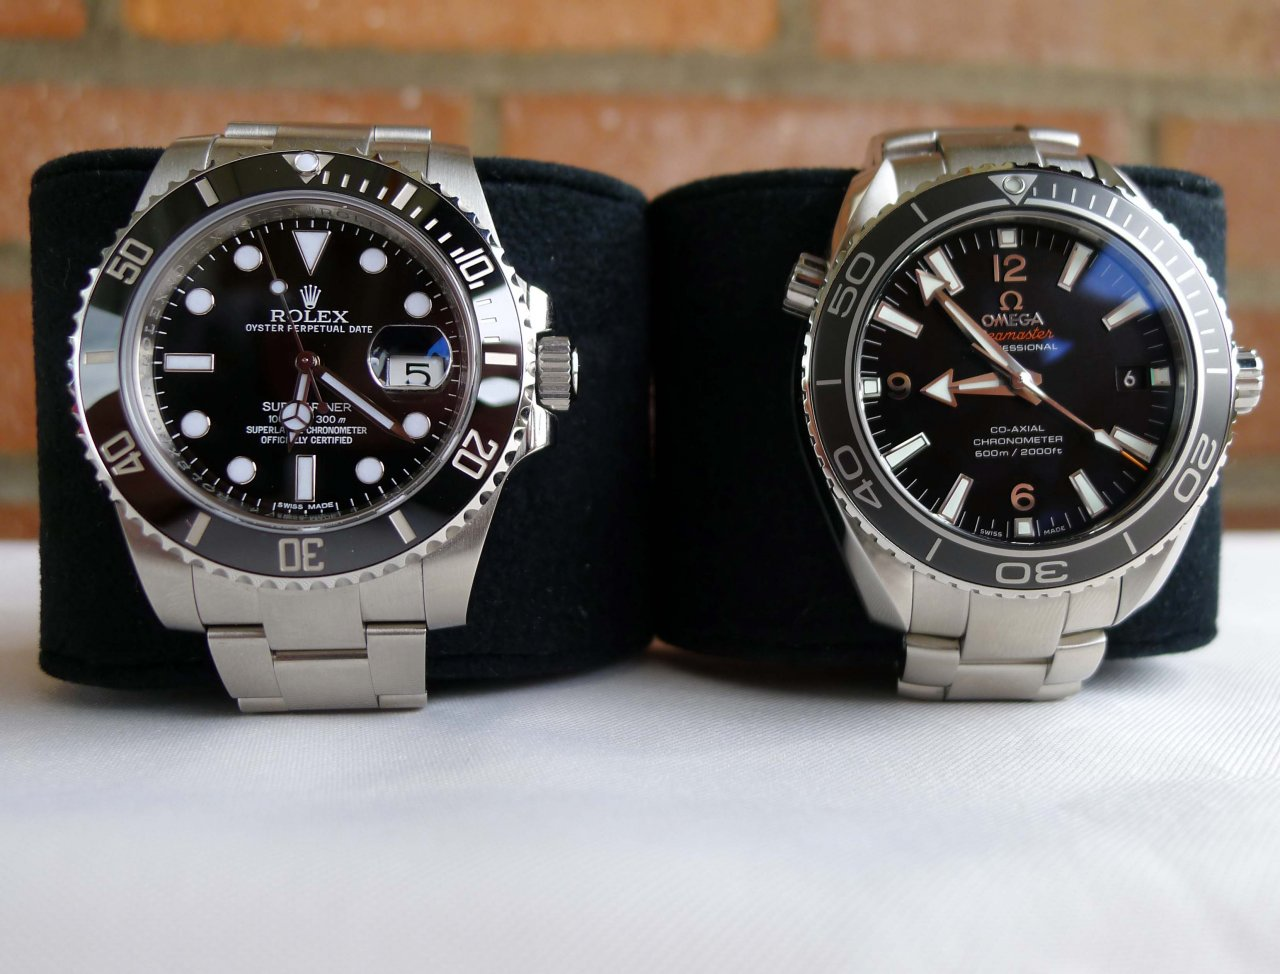 38286fb8de7 Just another poll, Omega Planet Ocean vs Rolex Submariner